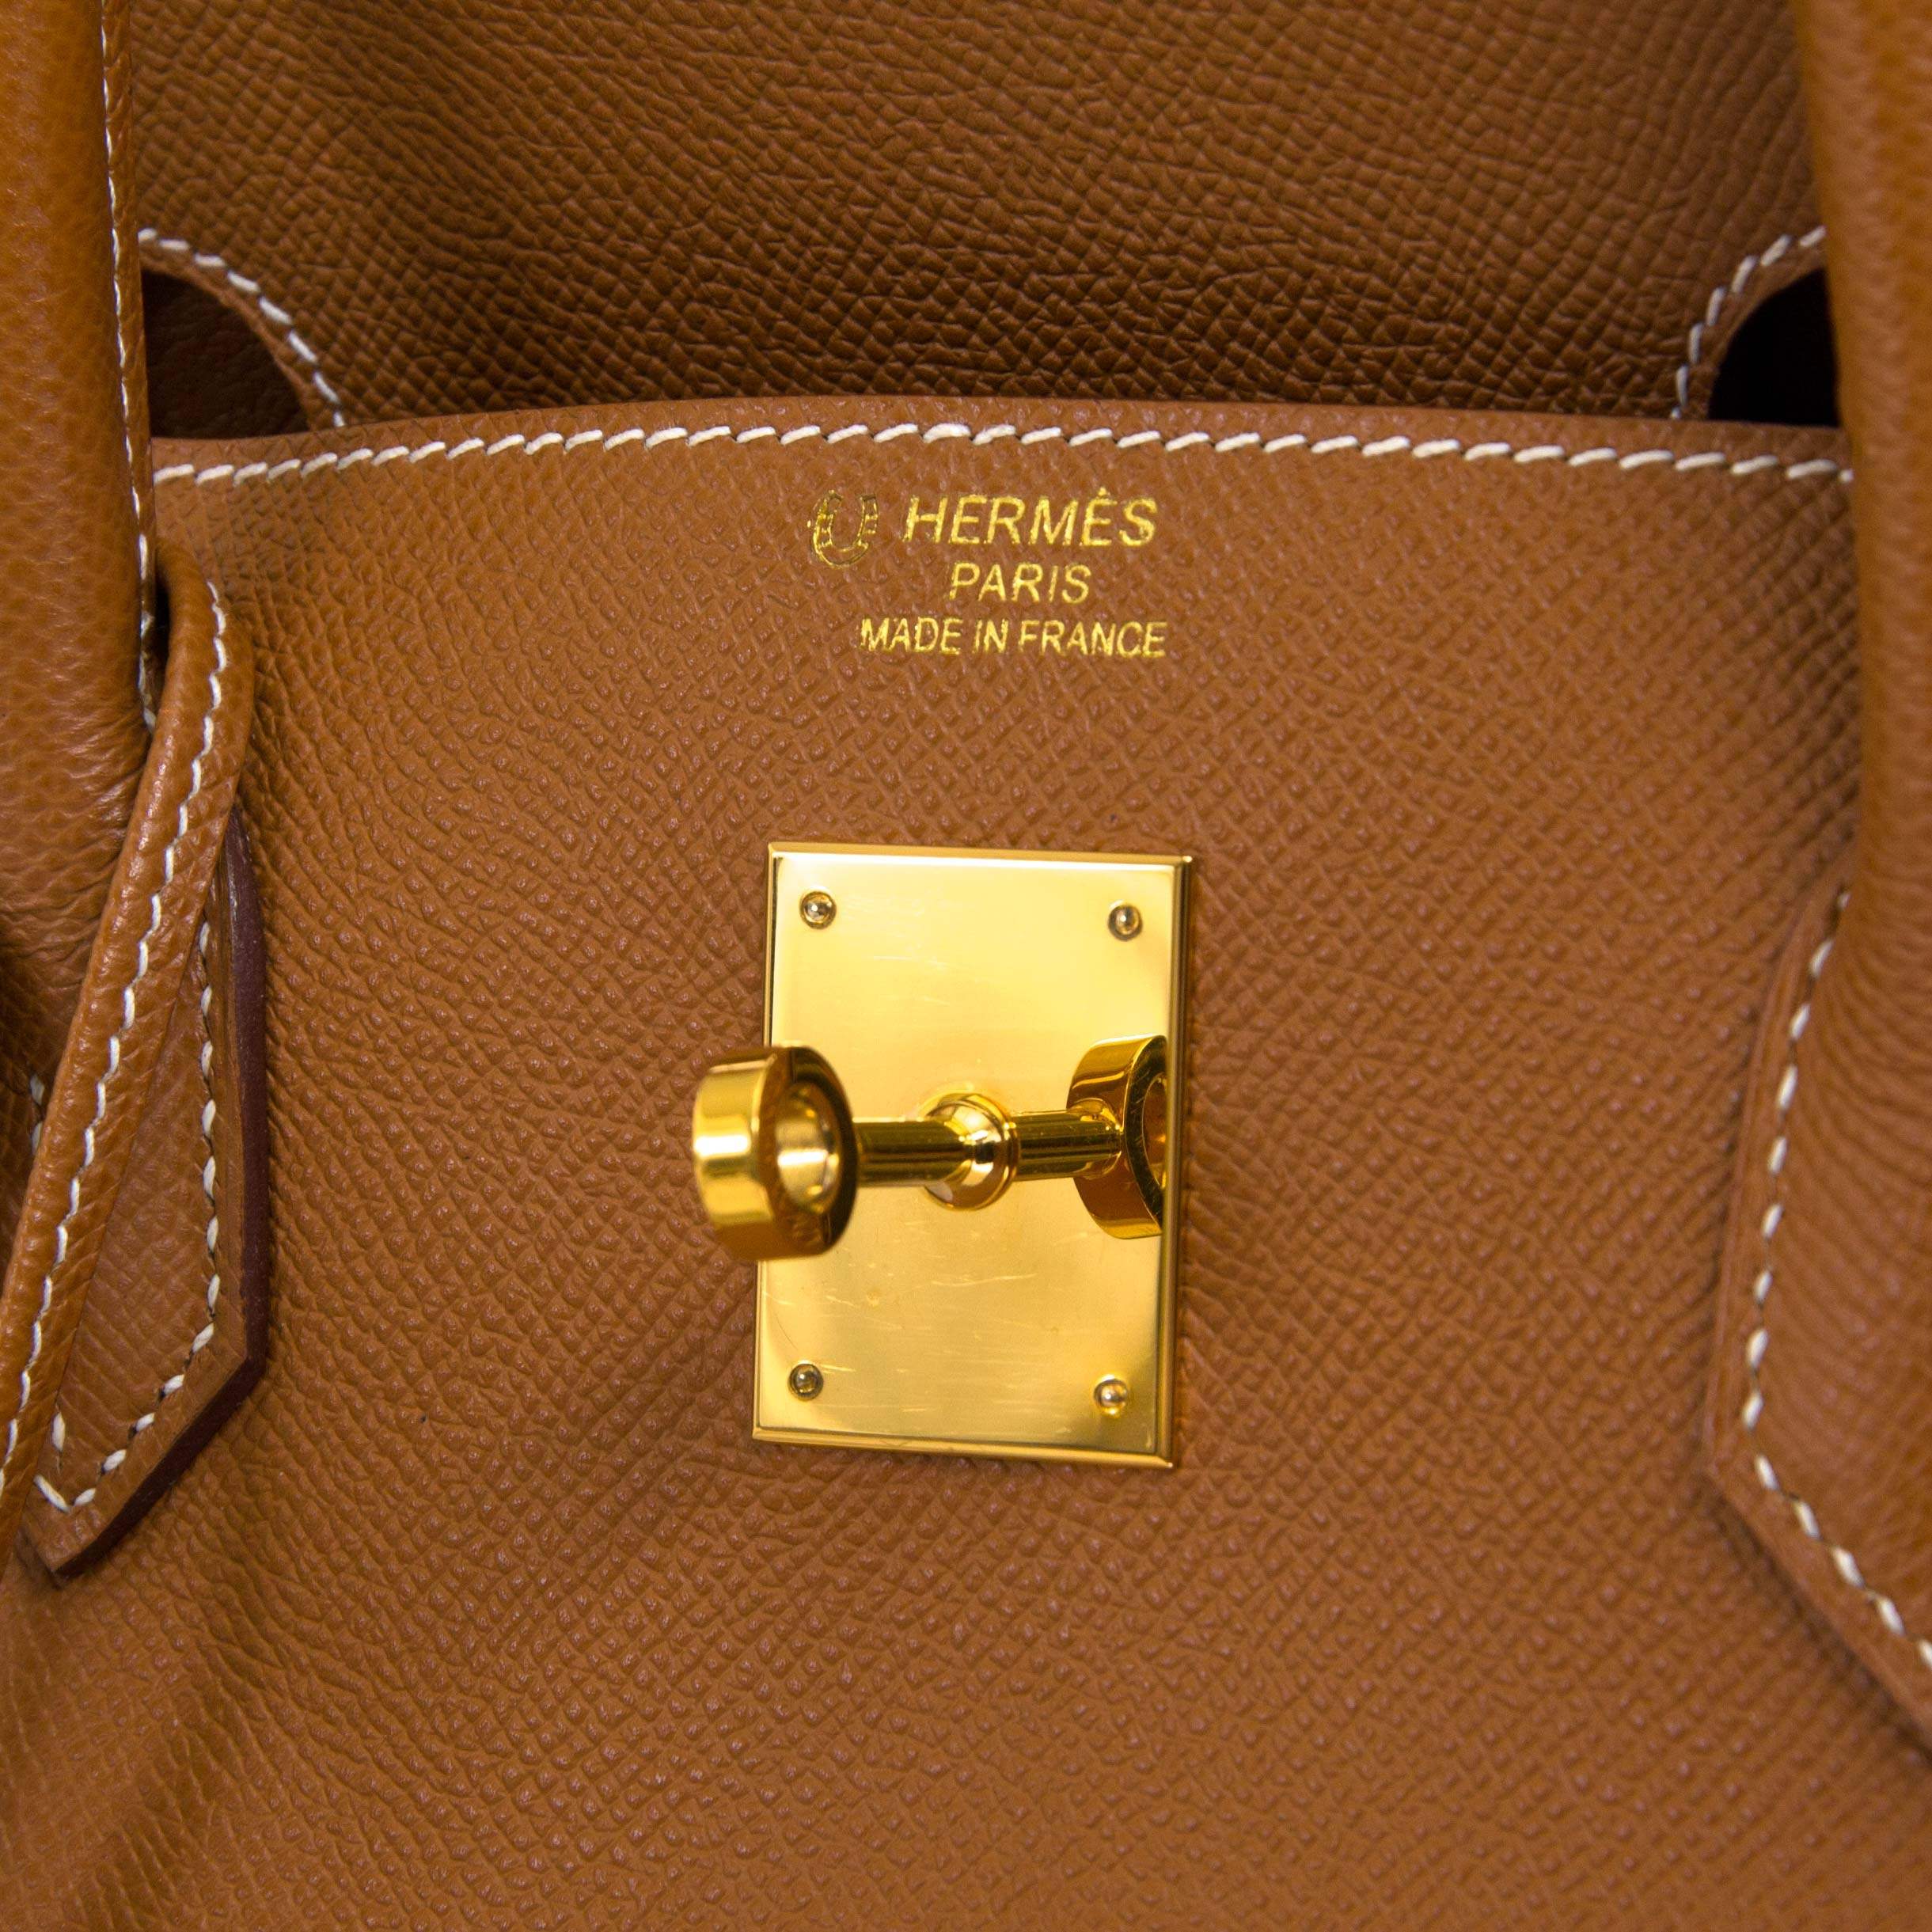 looking for a Hermès Birkin 40 HSS Horseshoe Gold Epsom GHW? right now for sale at labellov.com